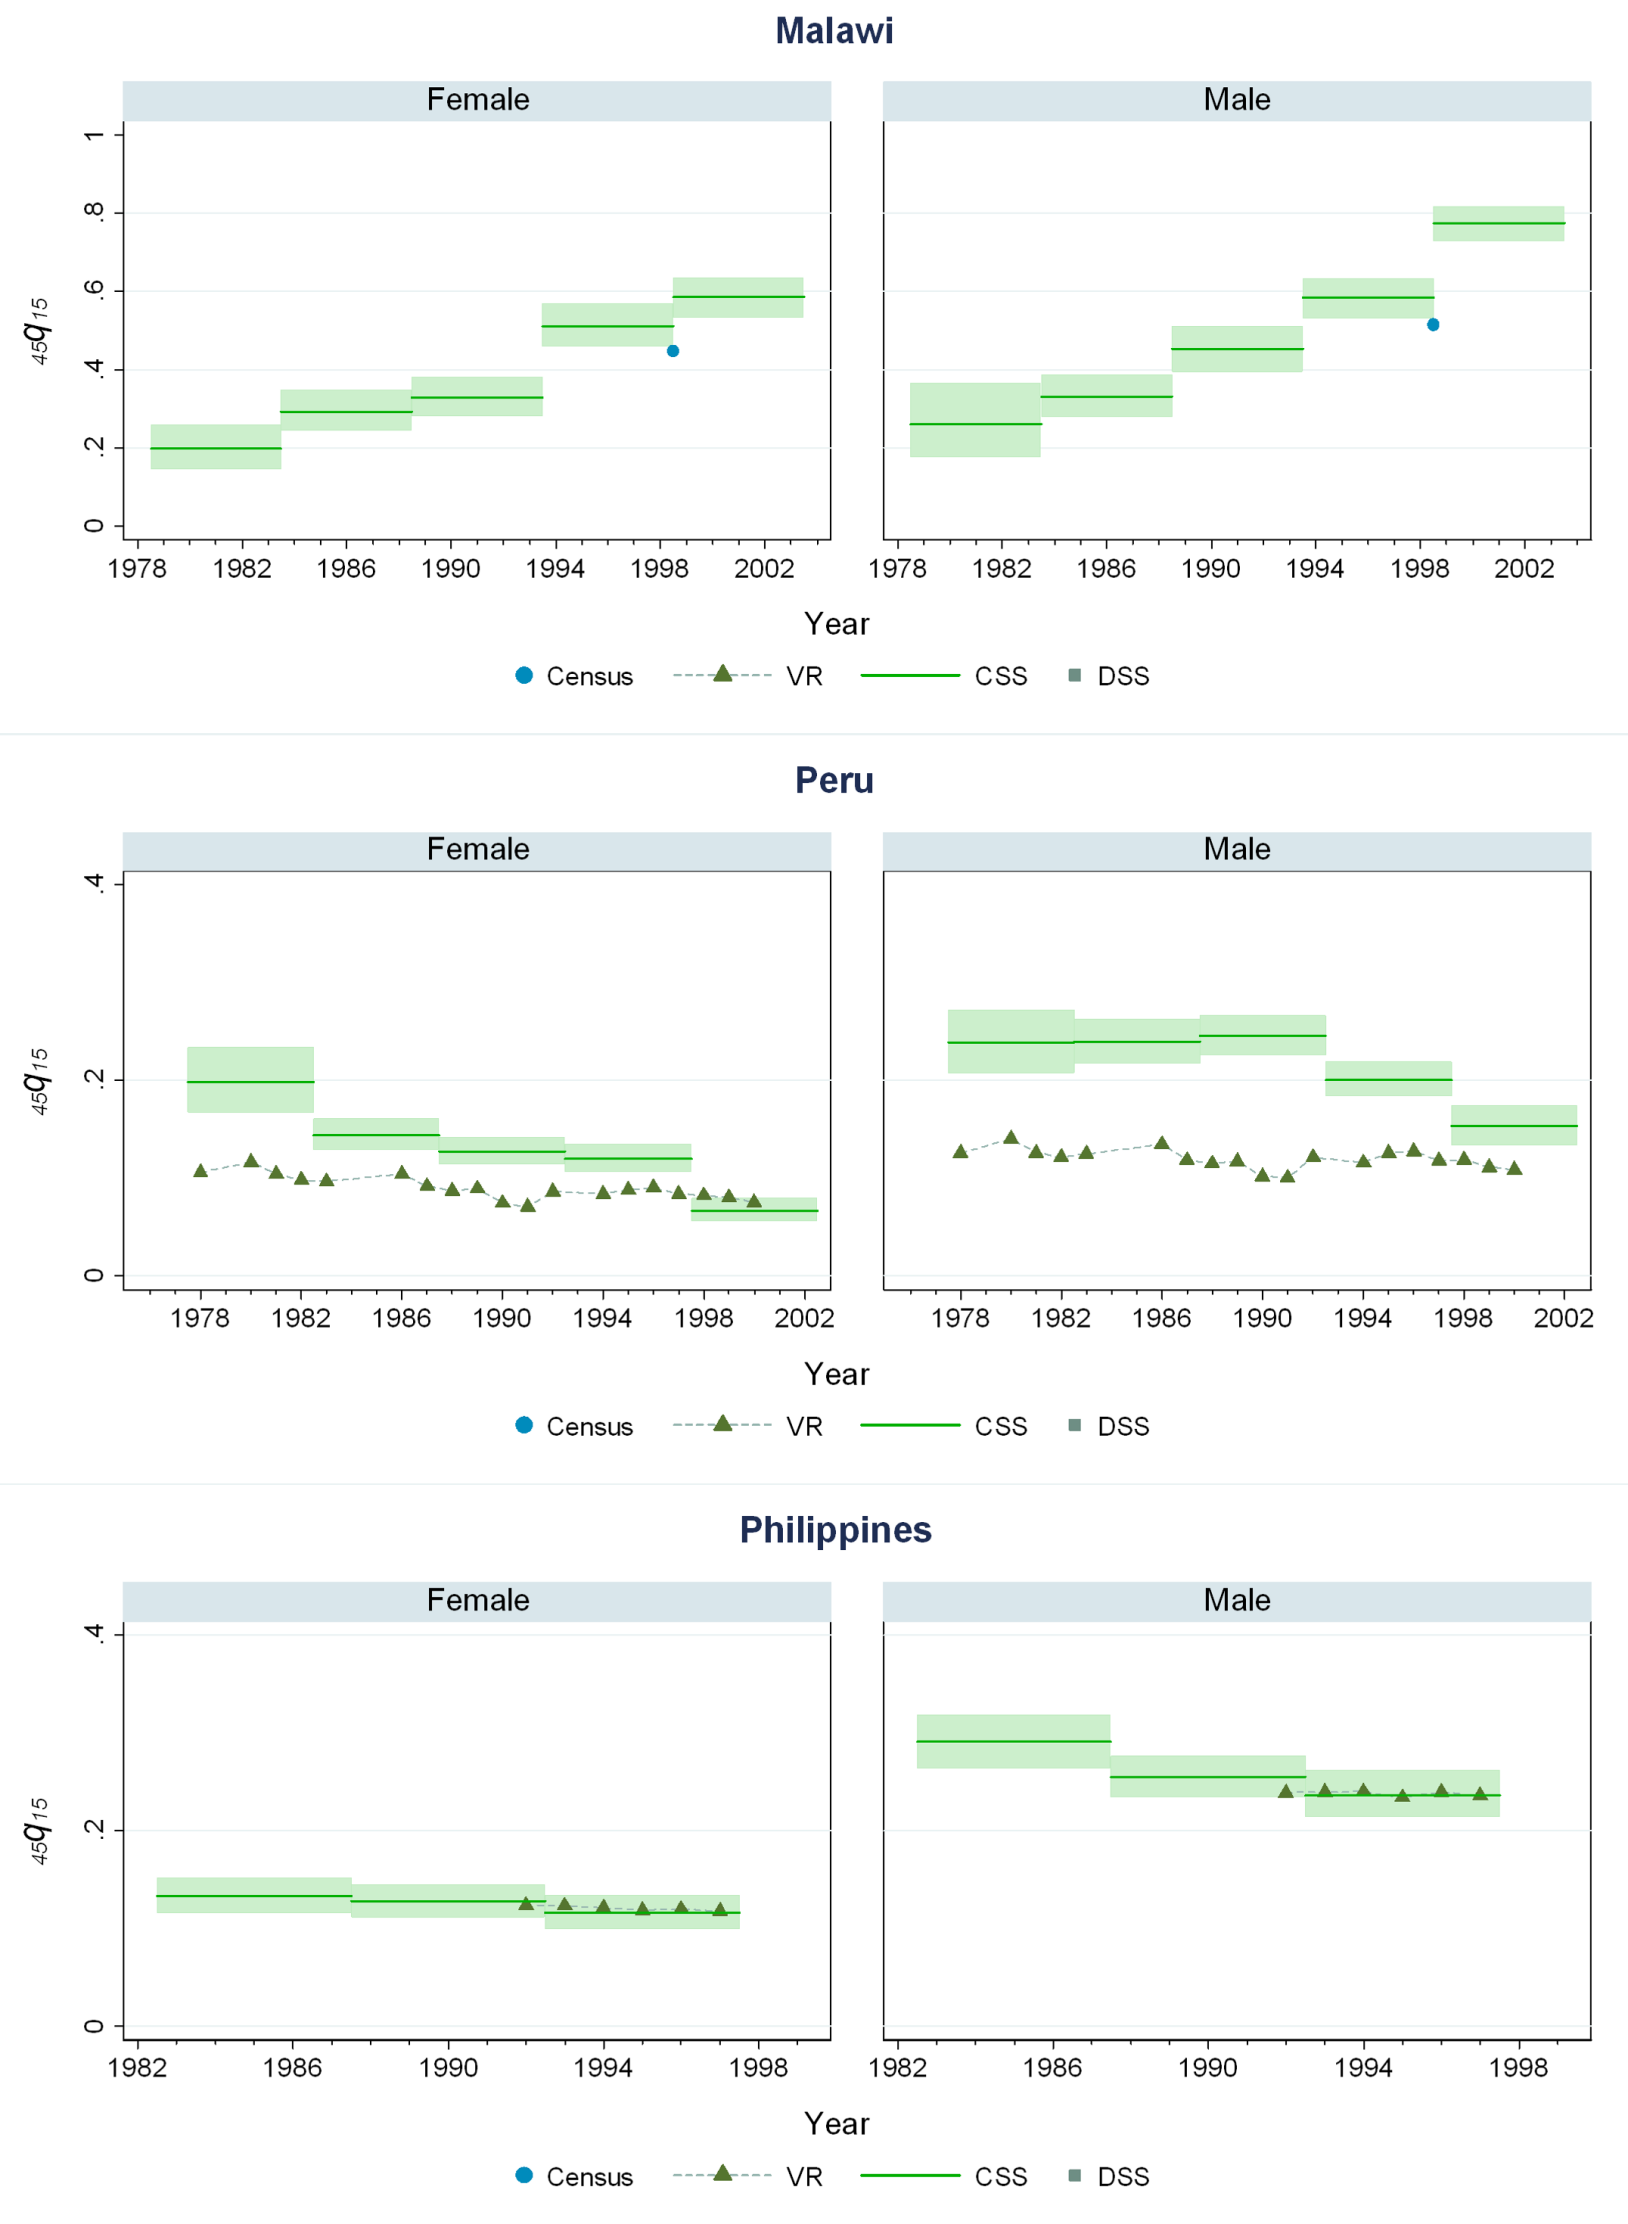 Estimates of <sub>45</sub><i>q</i><sub>15</sub> from the CSS method compared to estimates generated from vital registration, DSS, and census household death estimates: Malawi, Peru, The Philippines.